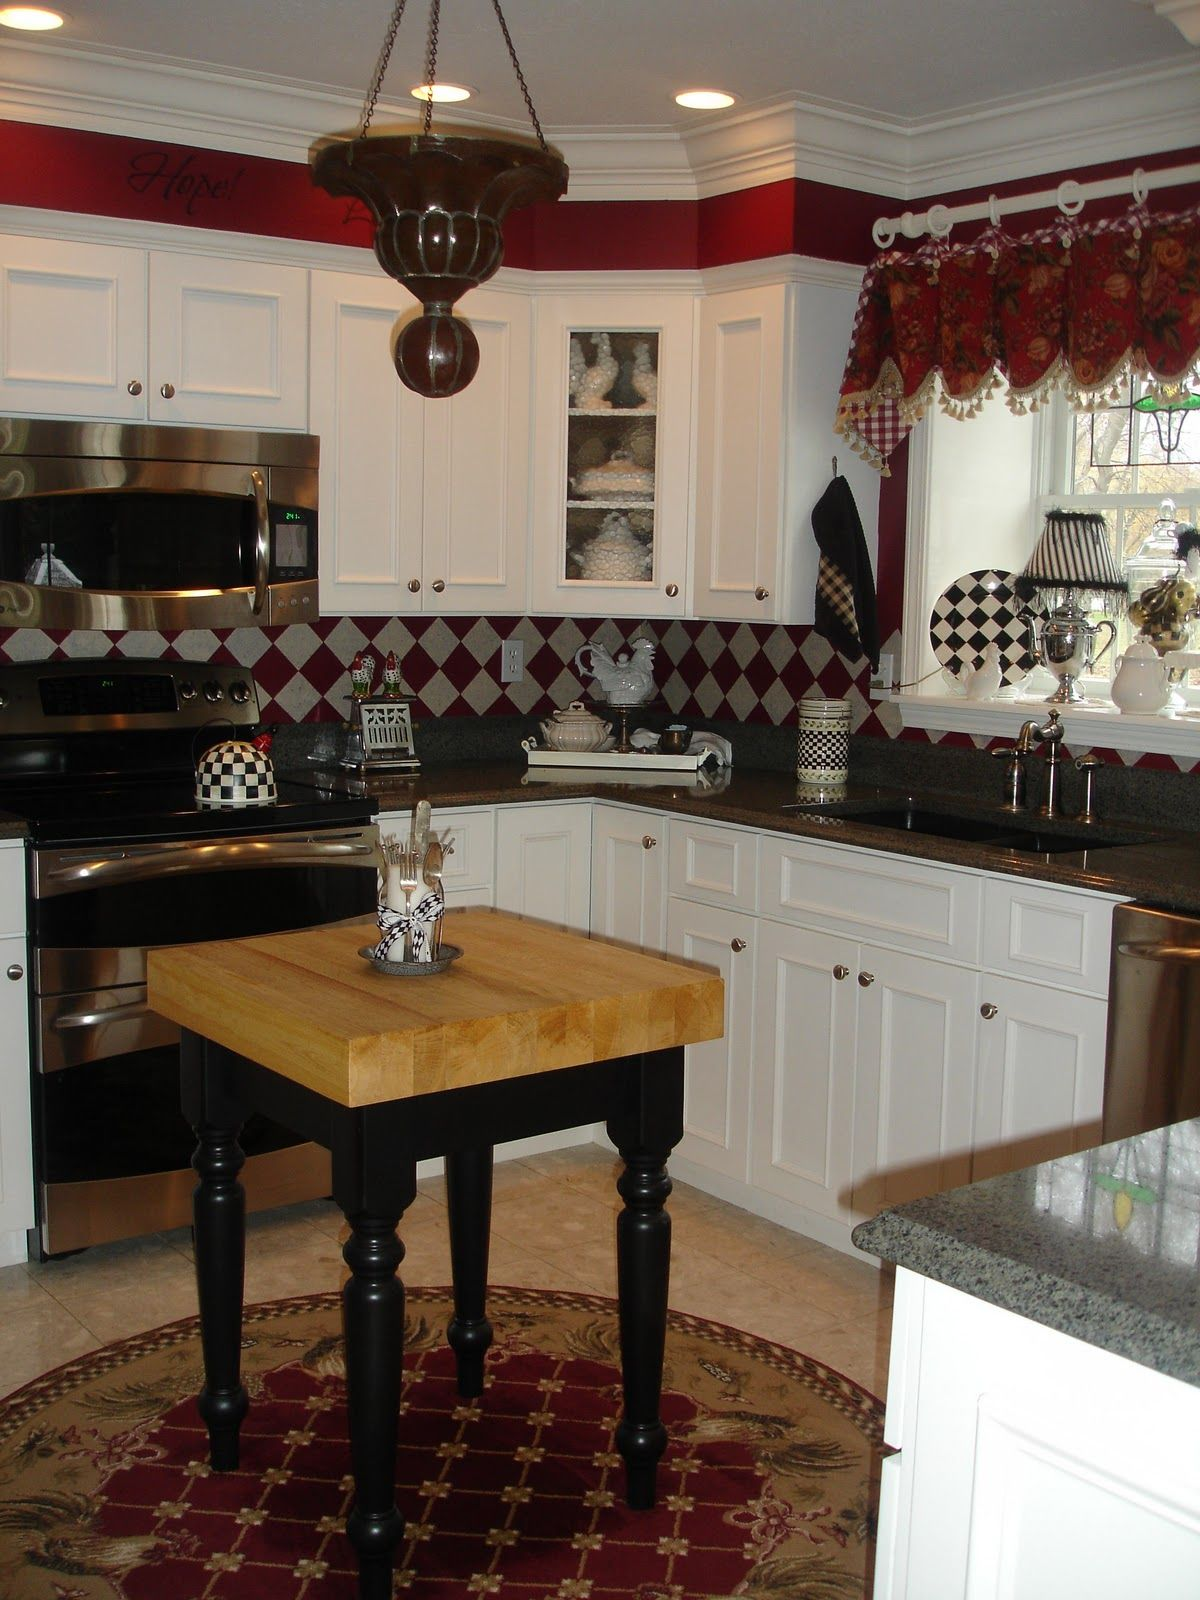 Best Images About Red Black And White Kitchen On Pinterest - Kitchen designs with black appliances